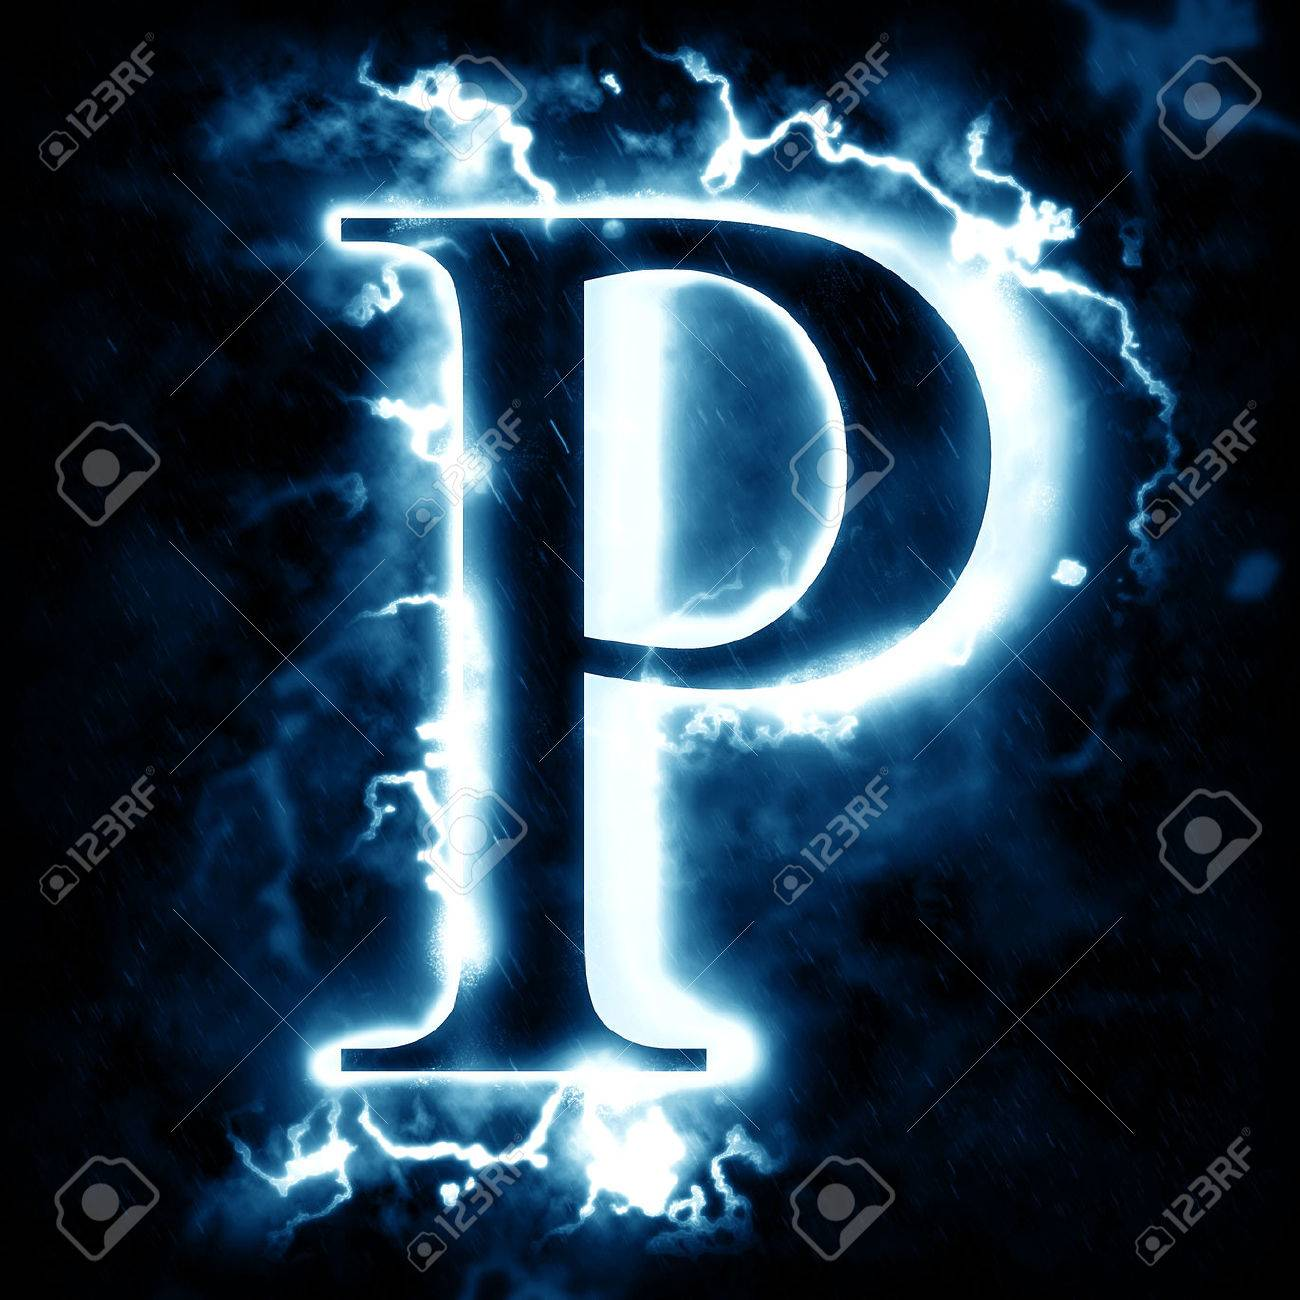 https://previews.123rf.com/images/ornitopter/ornitopter1510/ornitopter151000165/46712110-lightning-letter-p.jpg